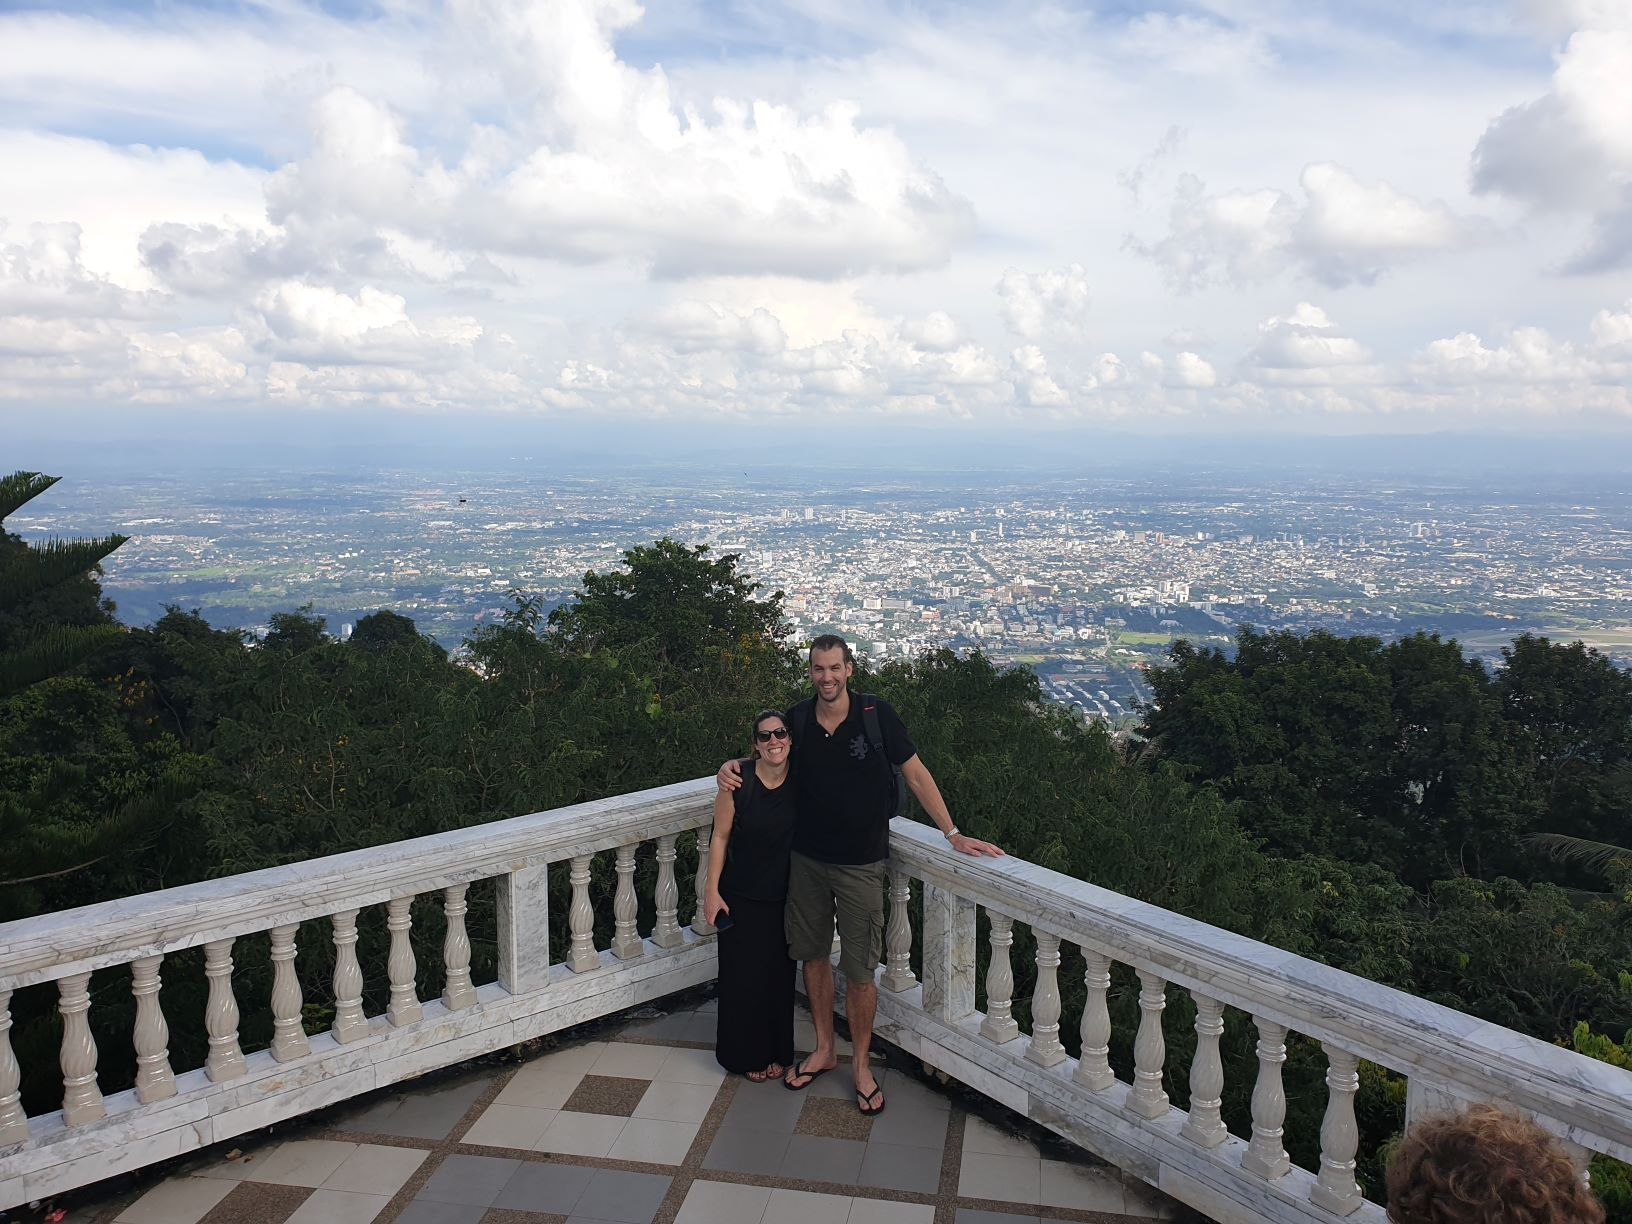 View of Chiang Mai city from Doi Suthep Temple